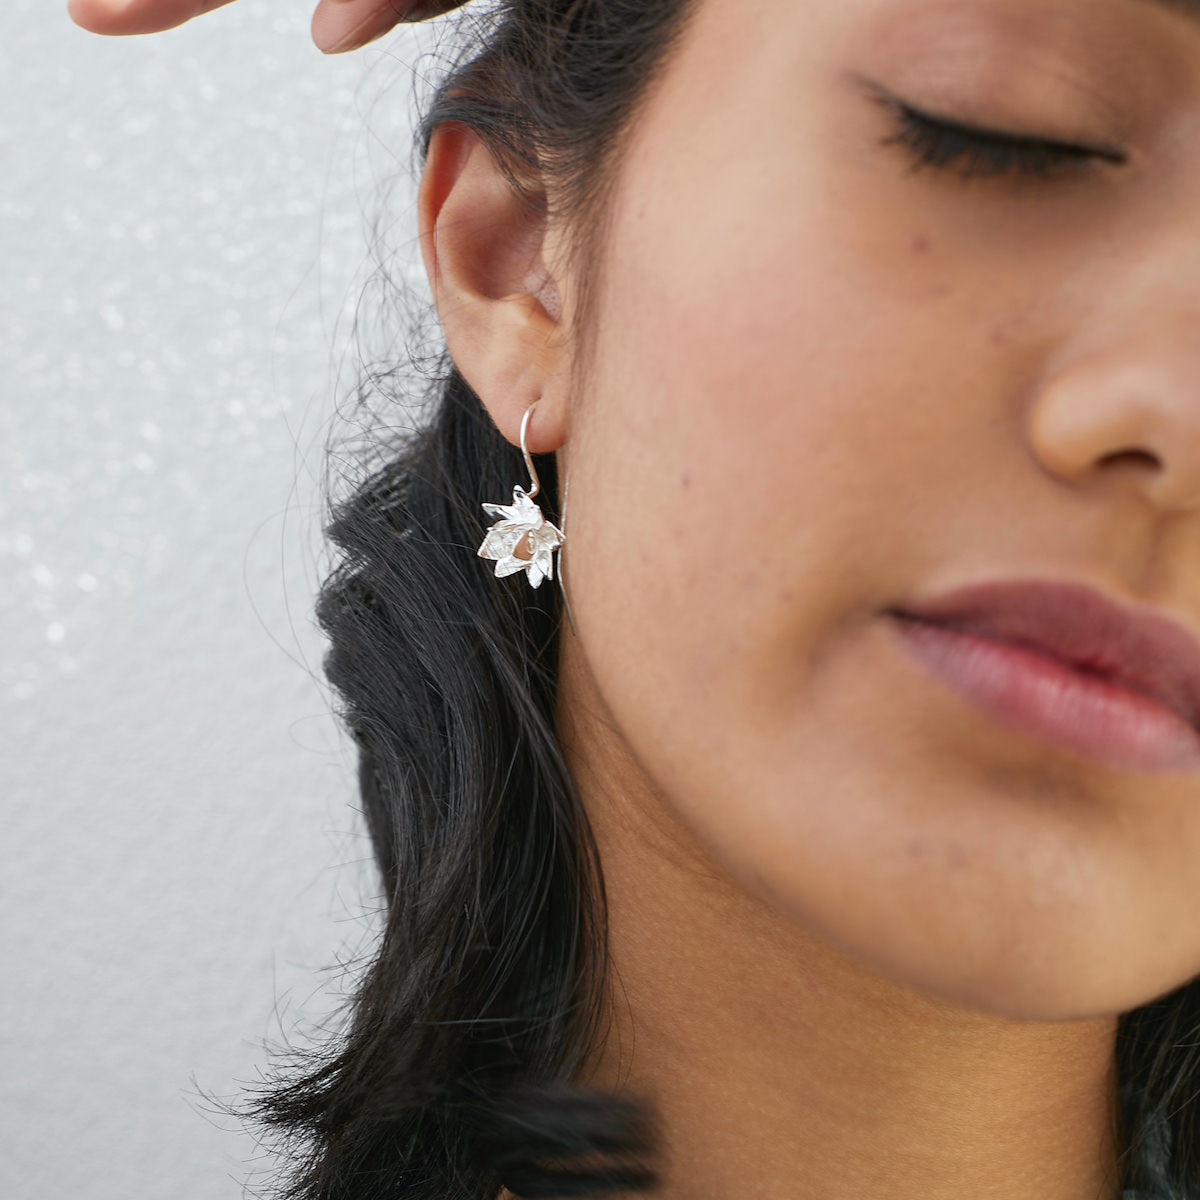 Woman wearing Brave Edith silver lotus hook earrings from bloom collection